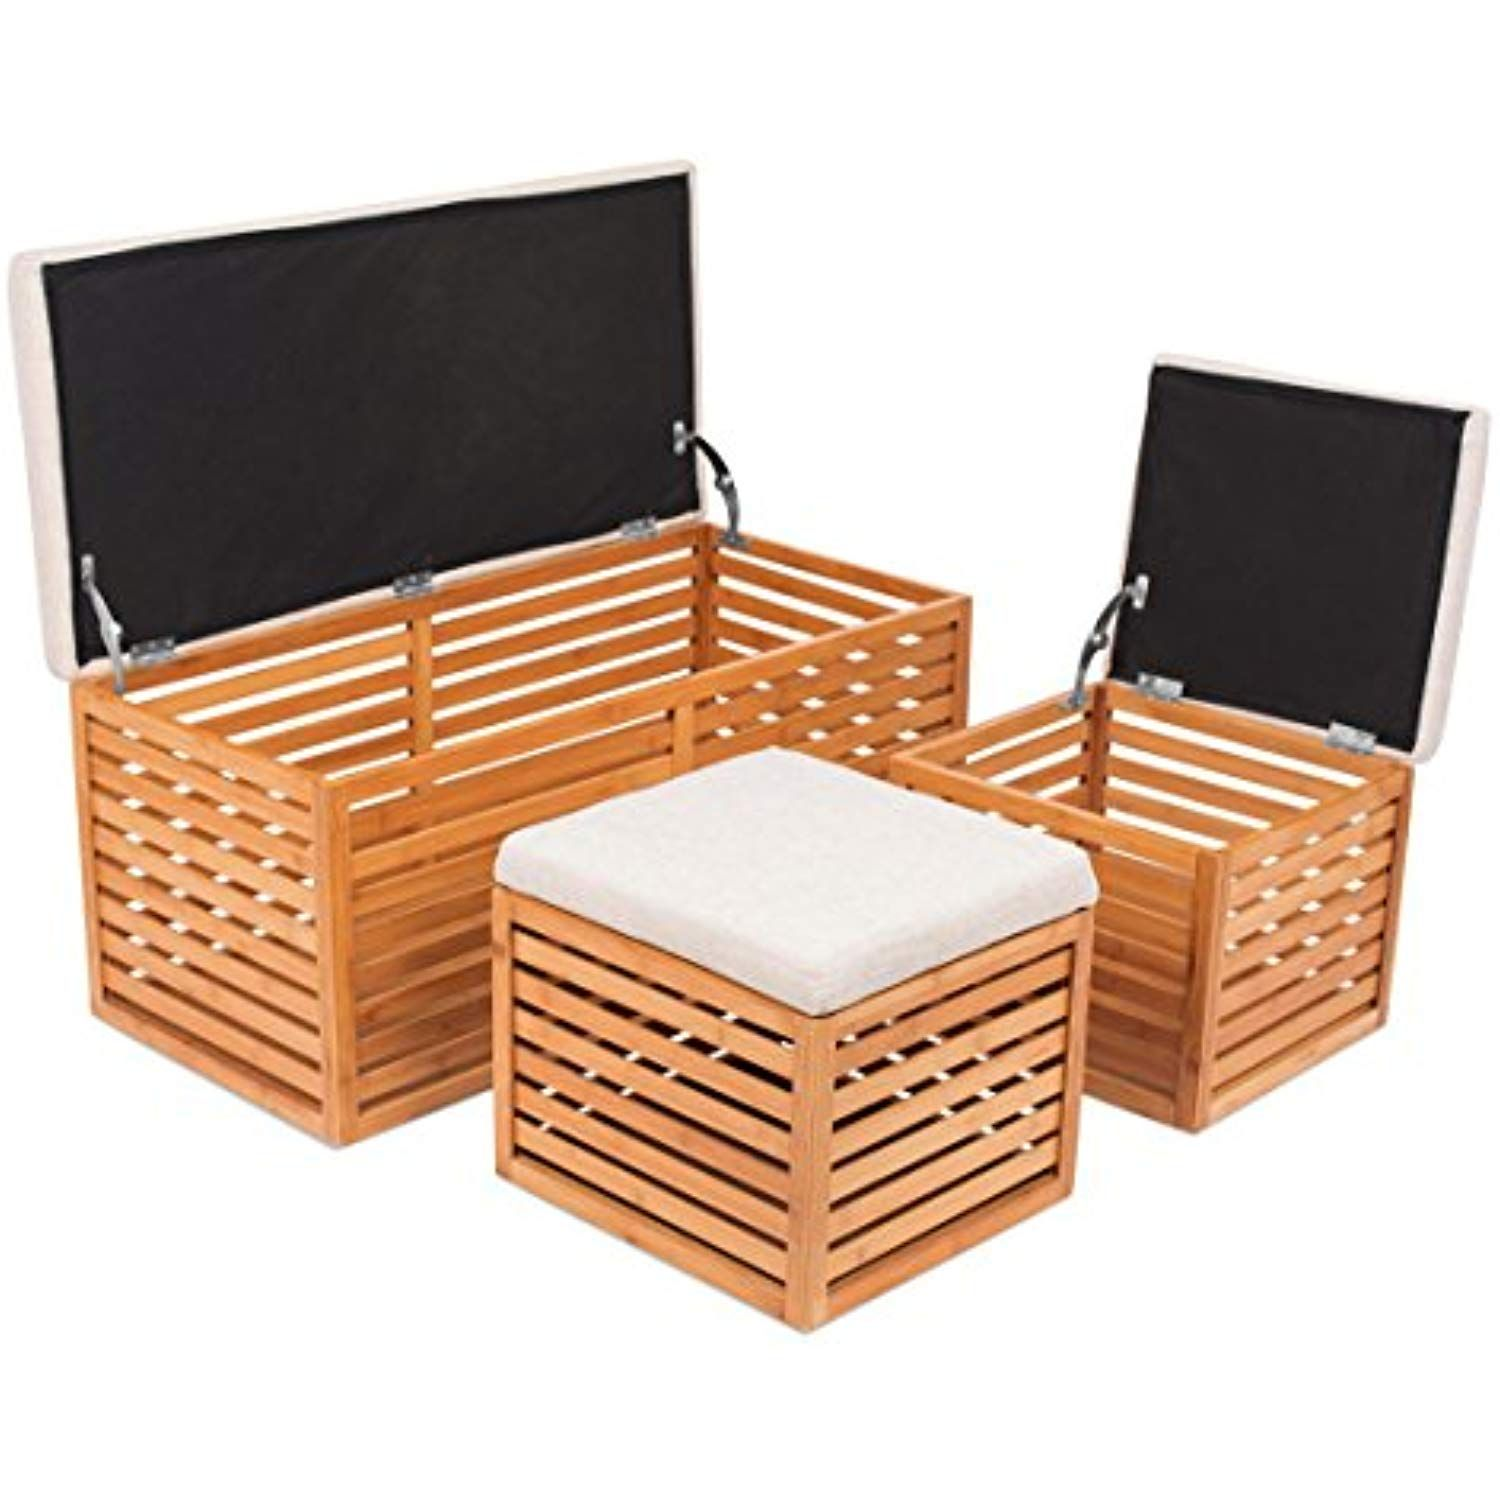 Peachy Birdrock Home Bamboo Storage Bench And Ottomans Set Bamboo Uwap Interior Chair Design Uwaporg